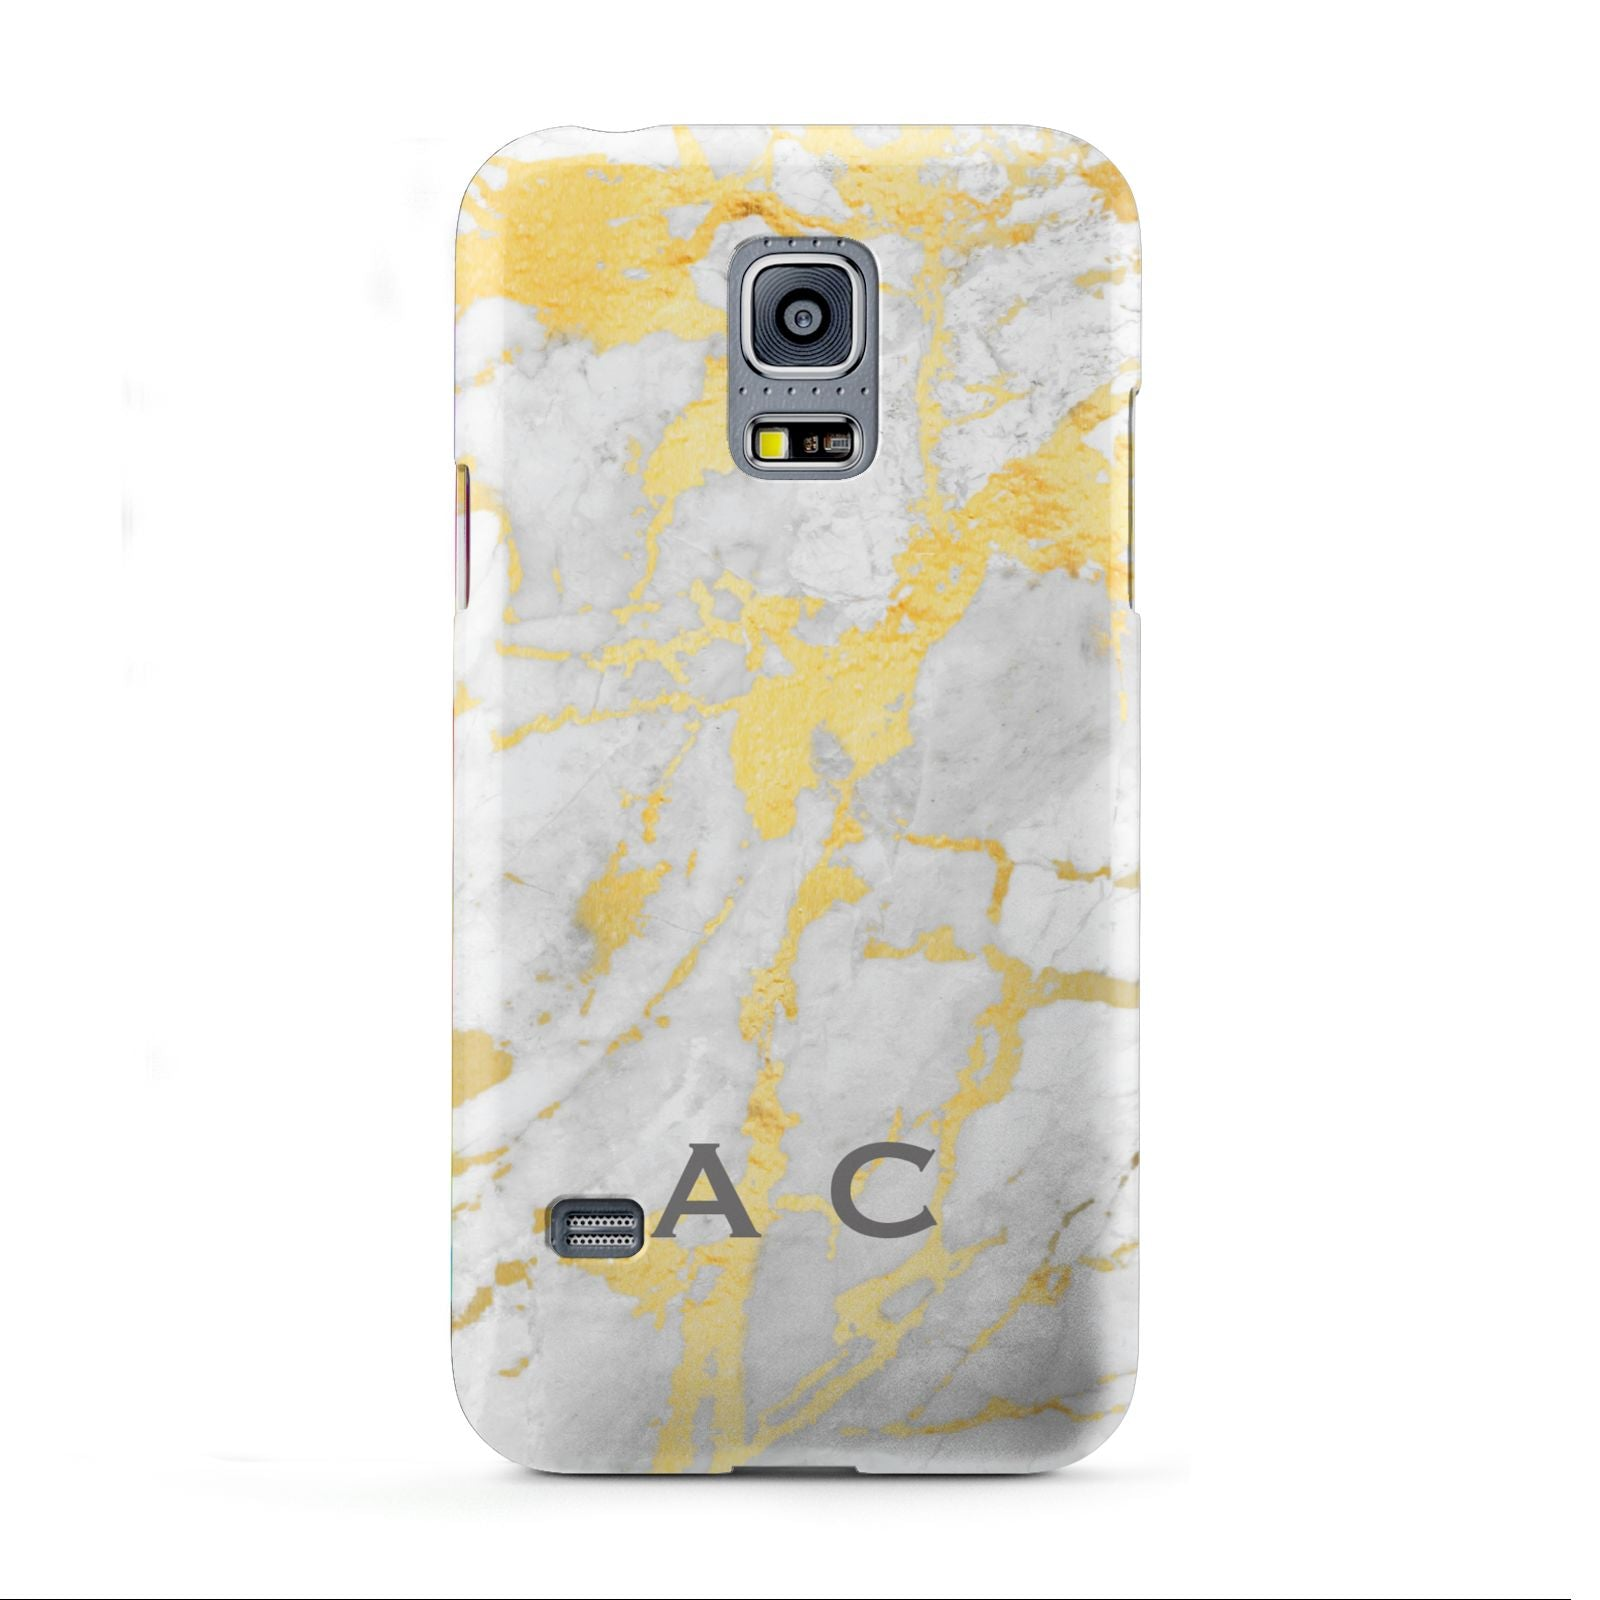 Gold Marble Initials Personalised Samsung Galaxy S5 Mini Case